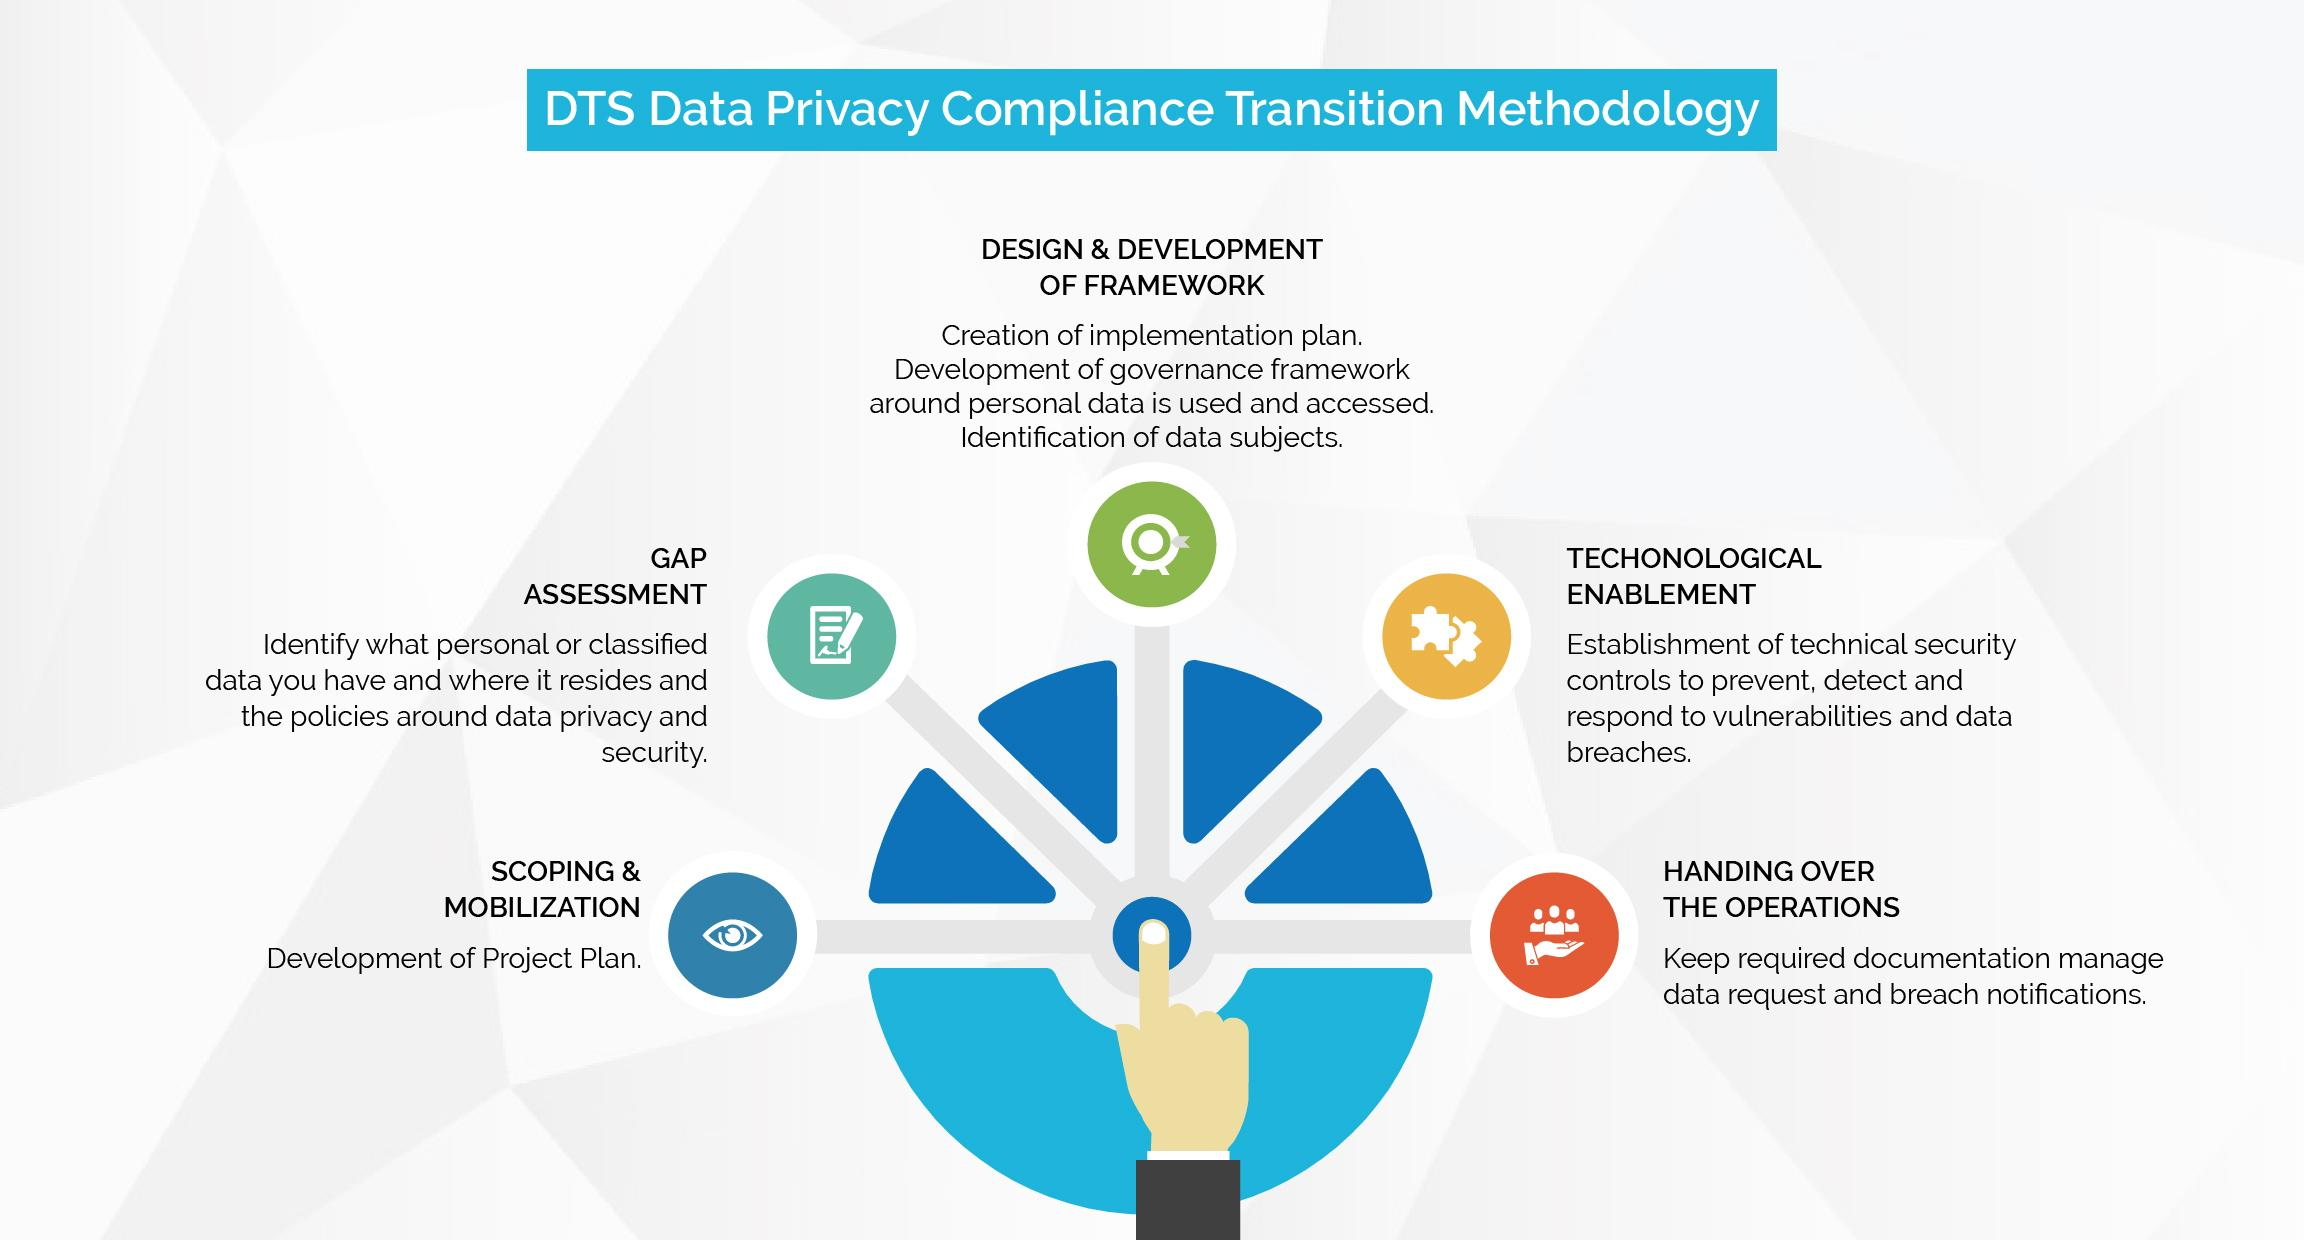 DTS Data Privacy Compliance Transition Methodology